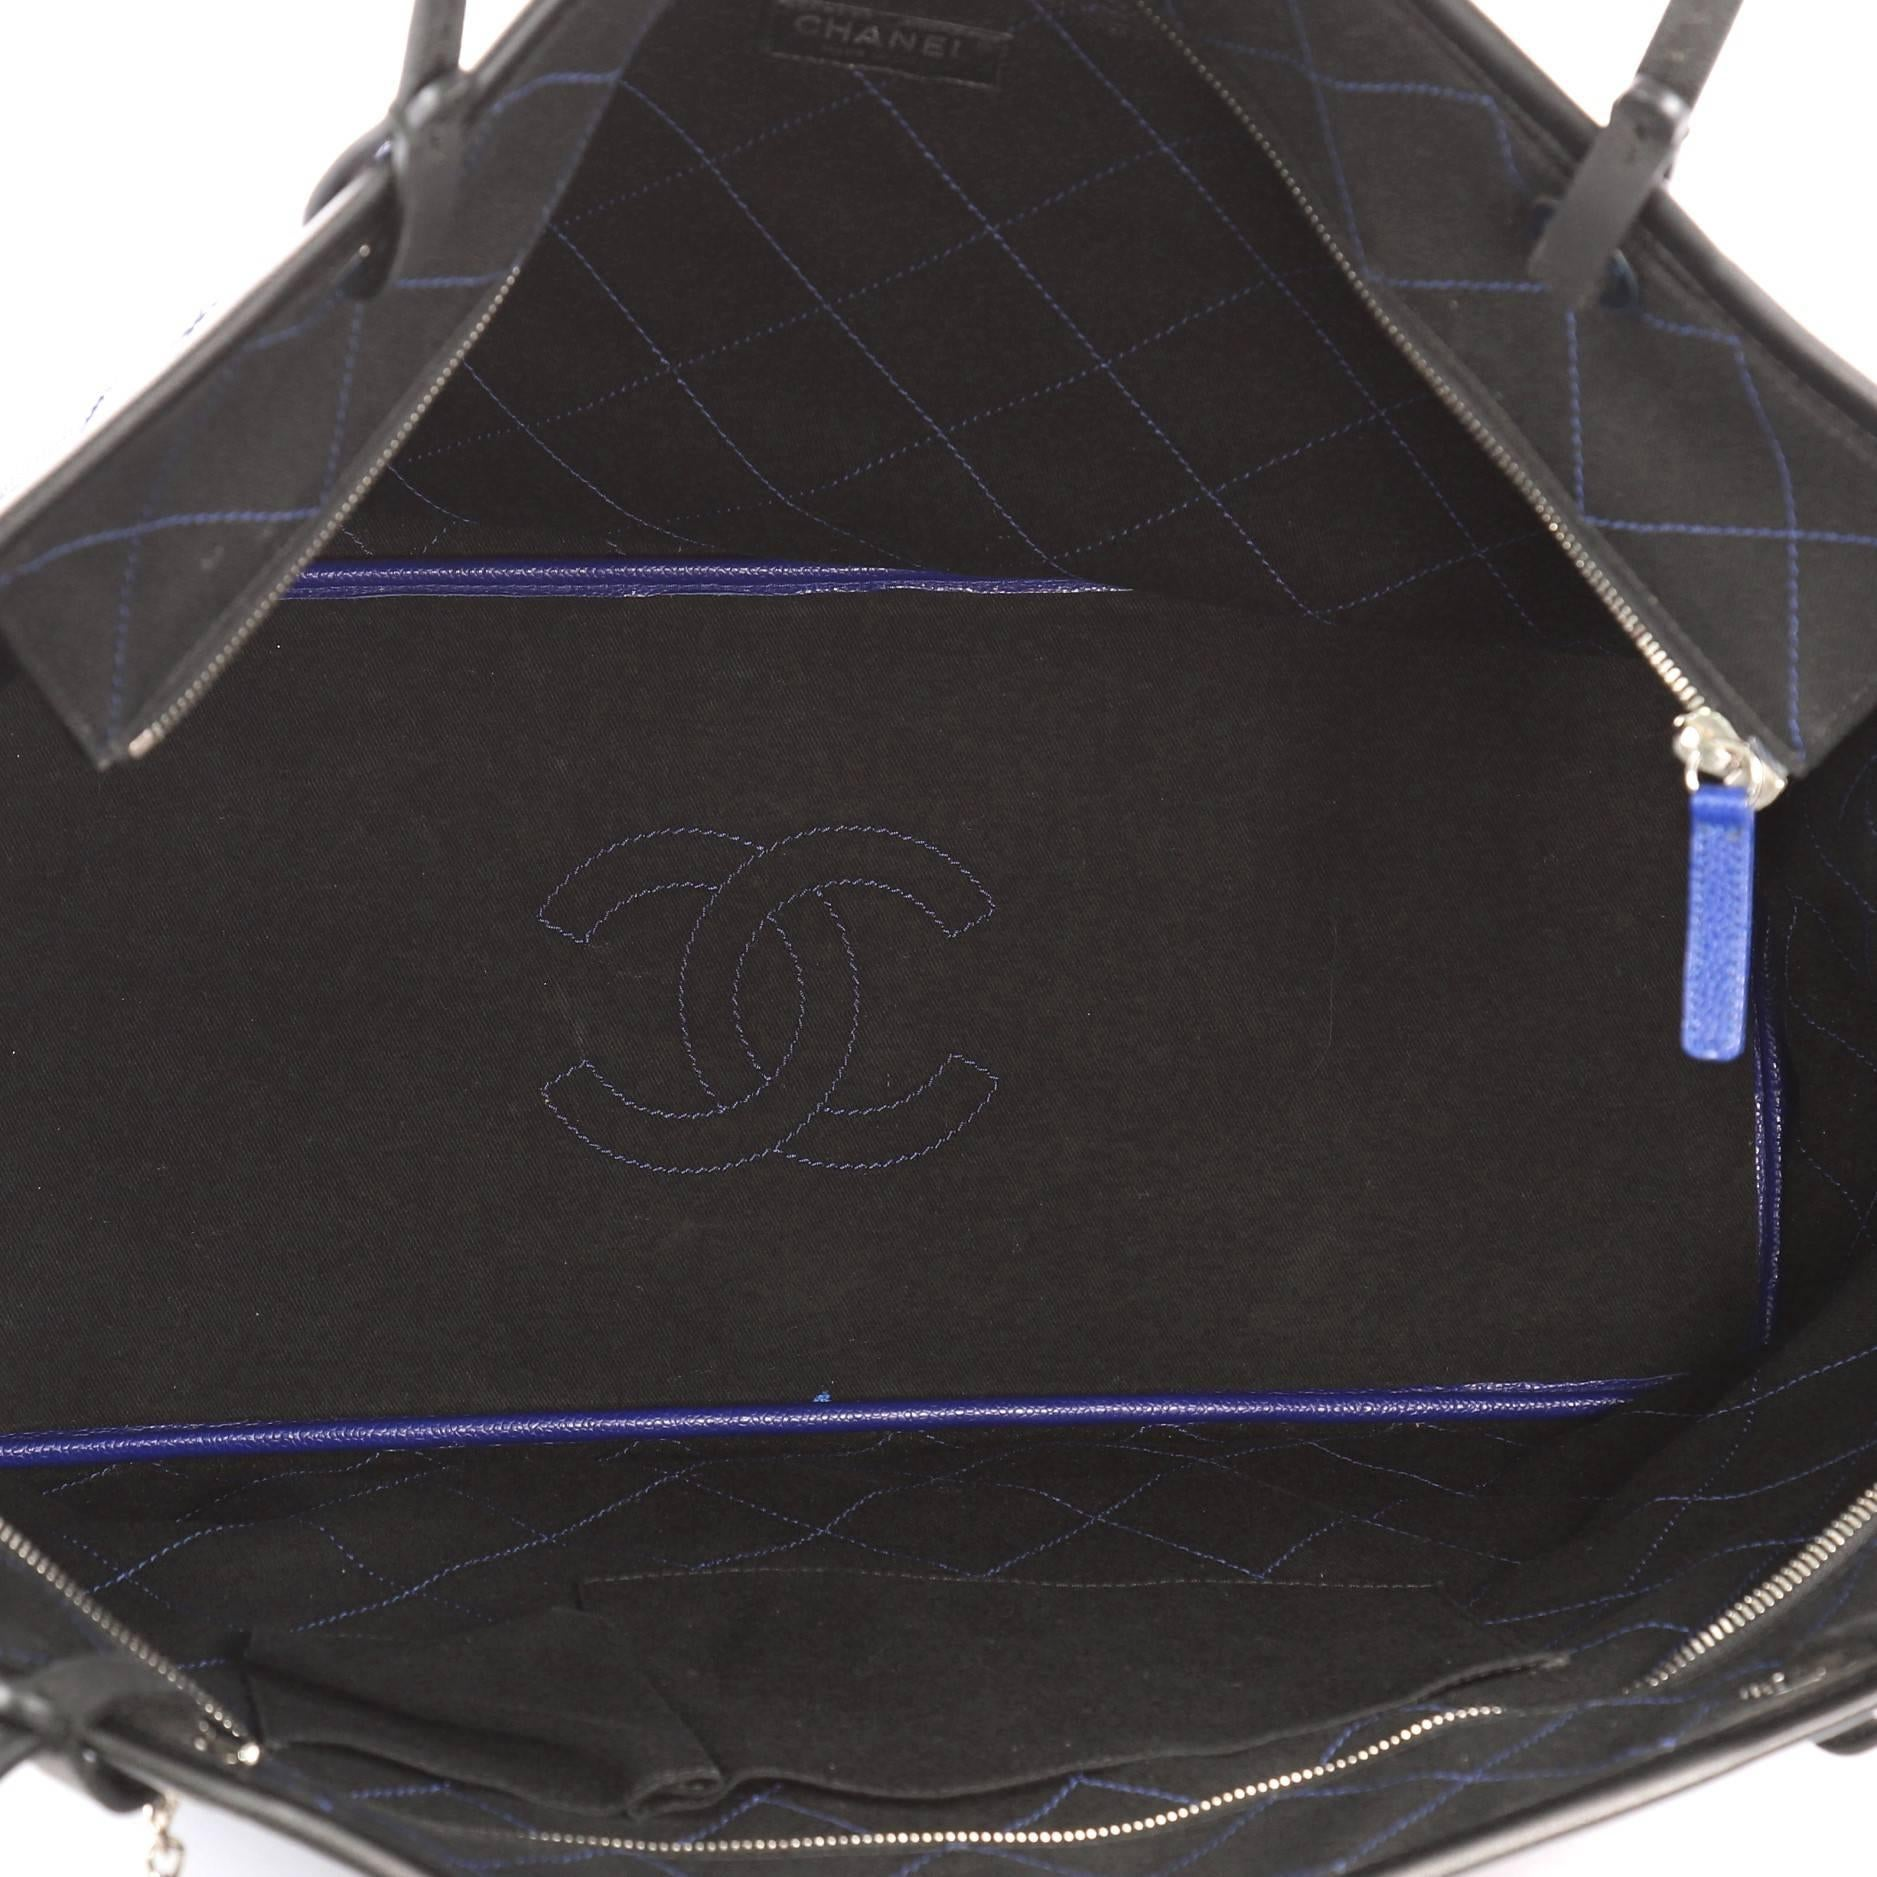 19a869e06d5764 Chanel Fever Tote Quilted Caviar XL at 1stdibs